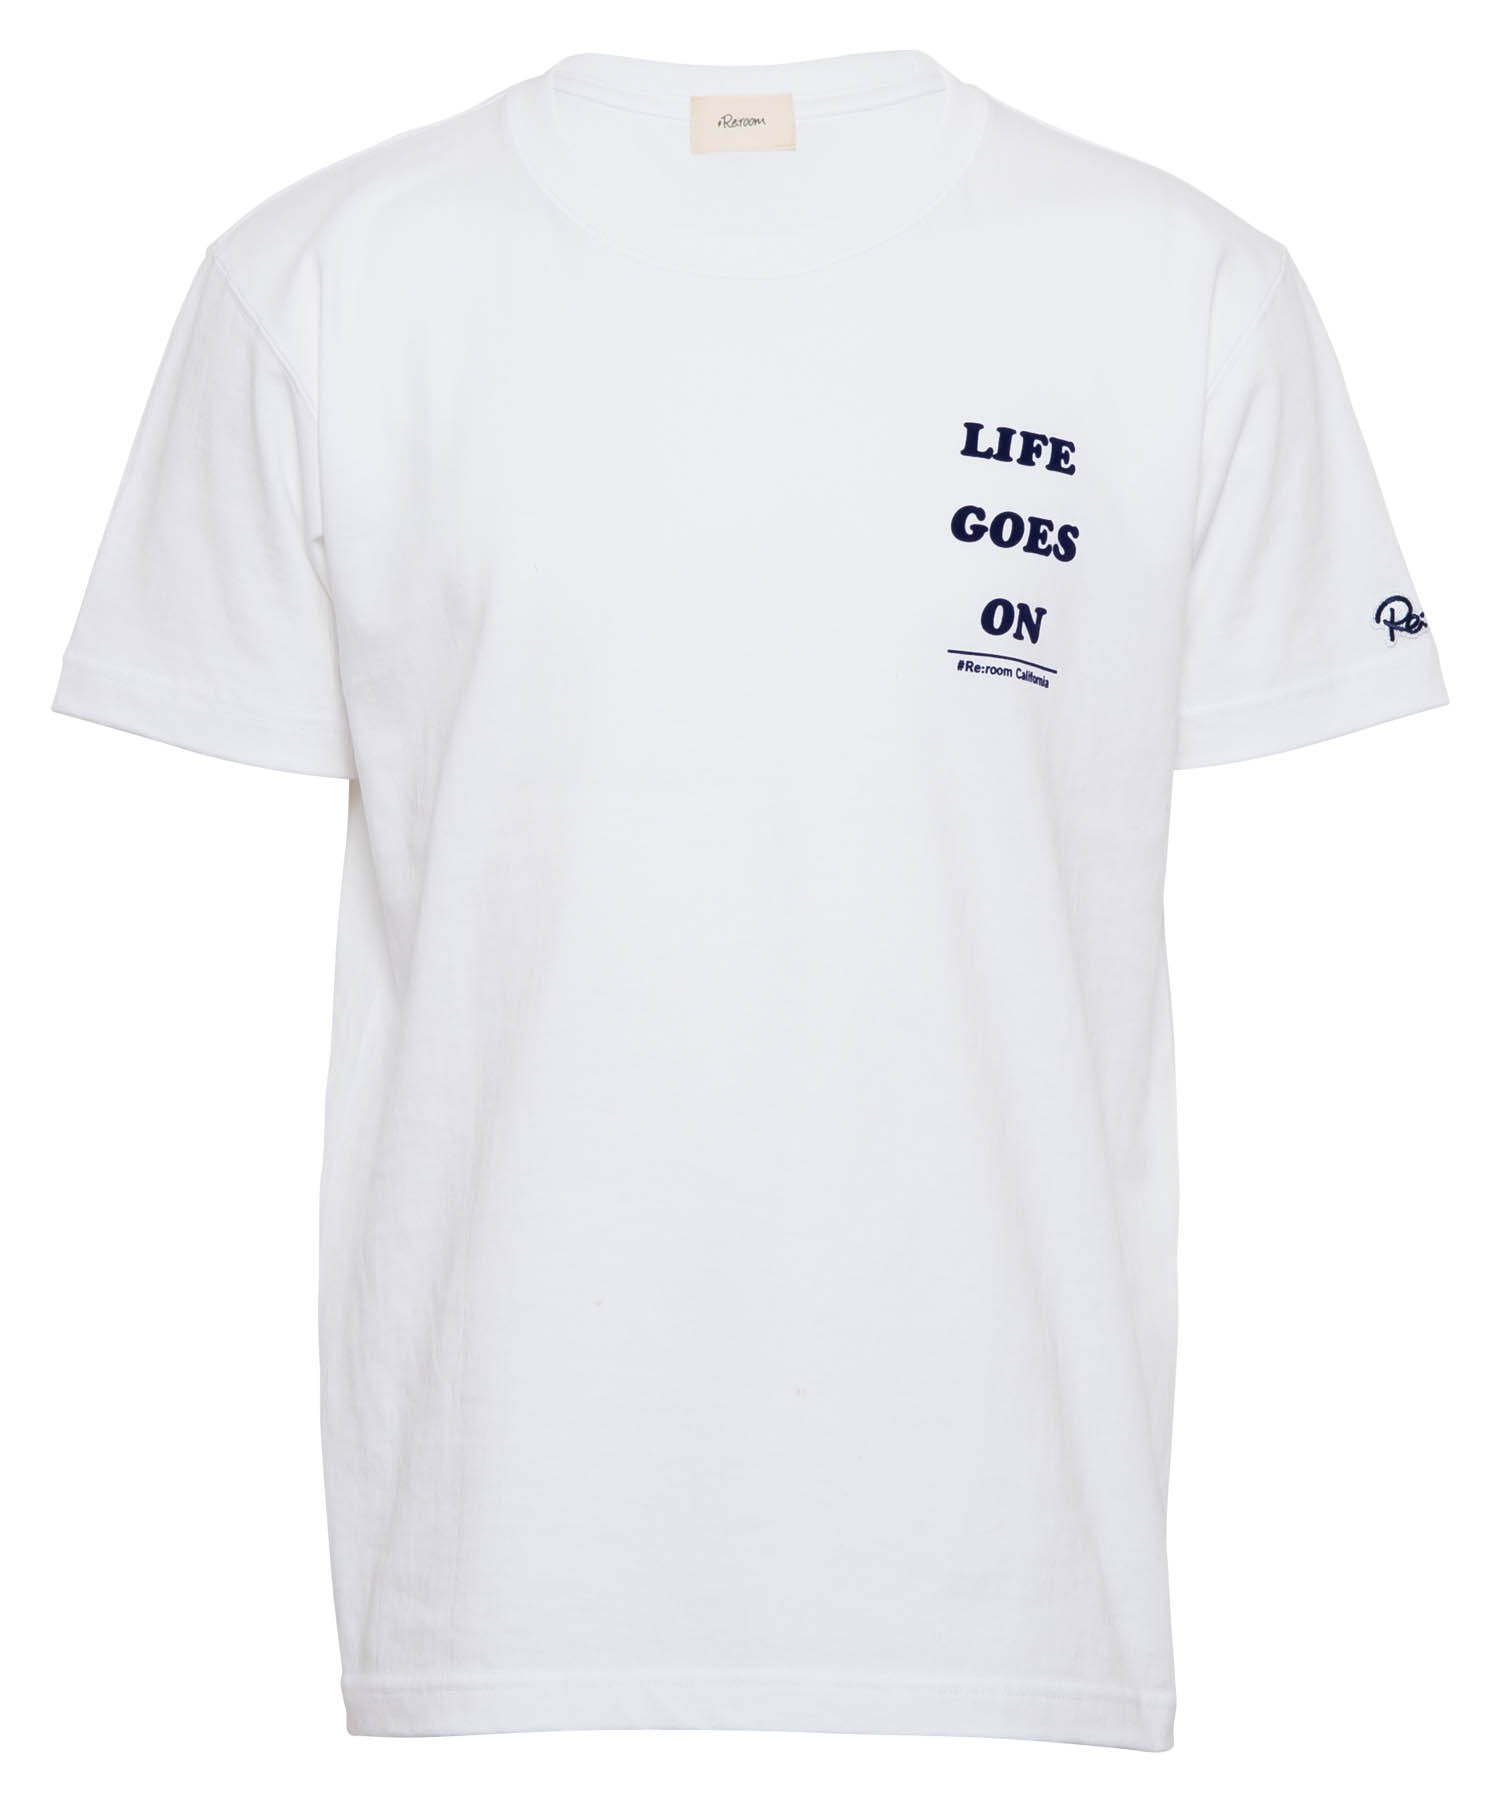 LIFE GOES ON MESSAGE T-shirt[REC375]